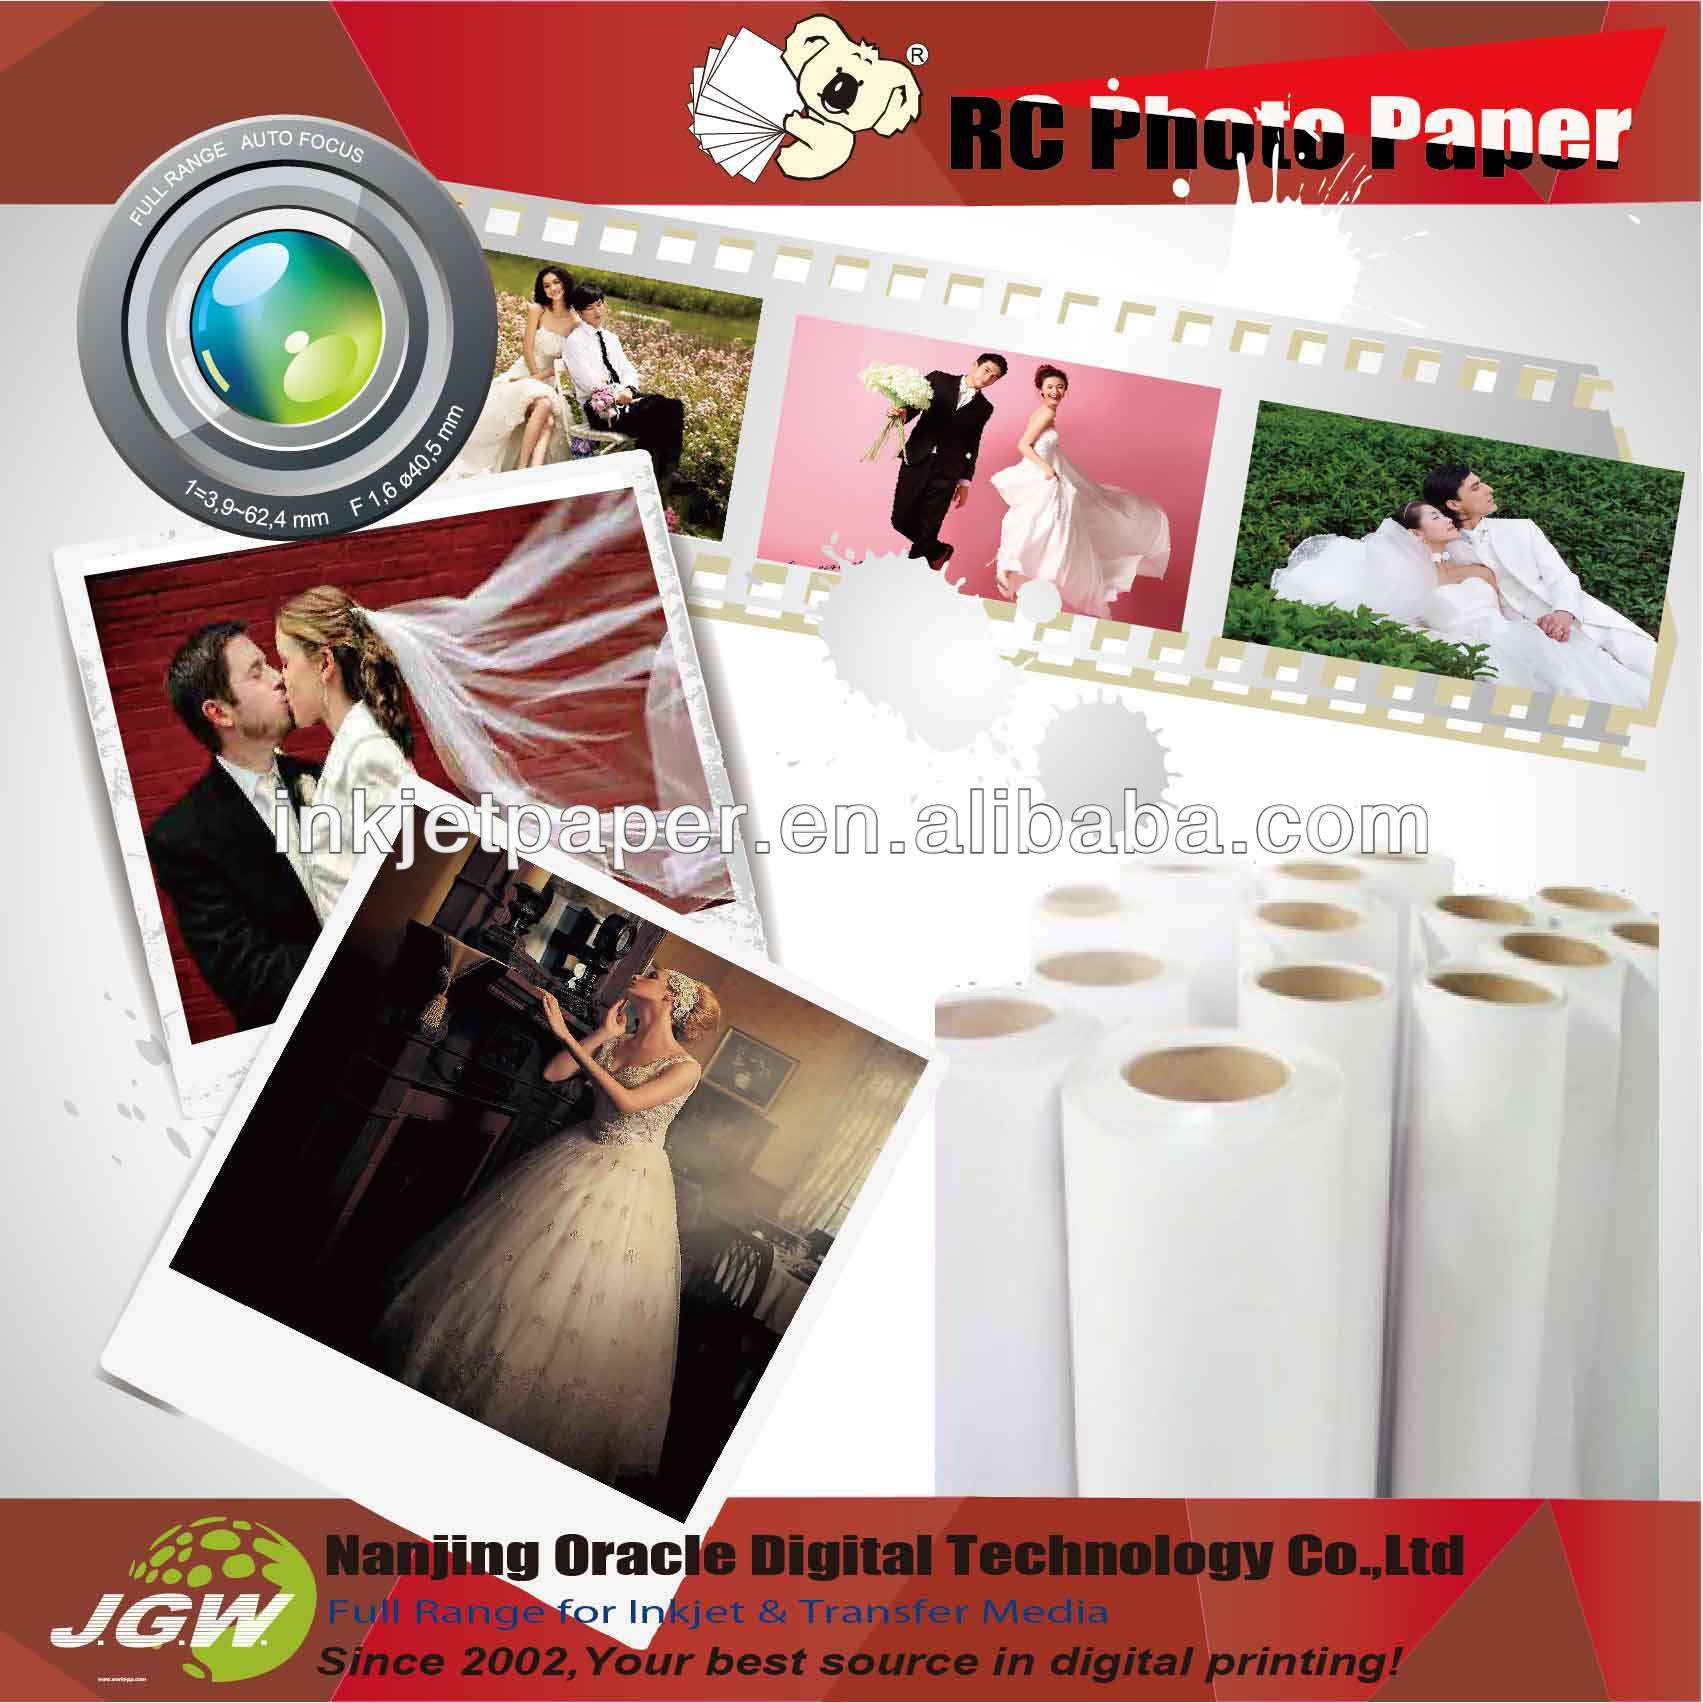 RC photopaper